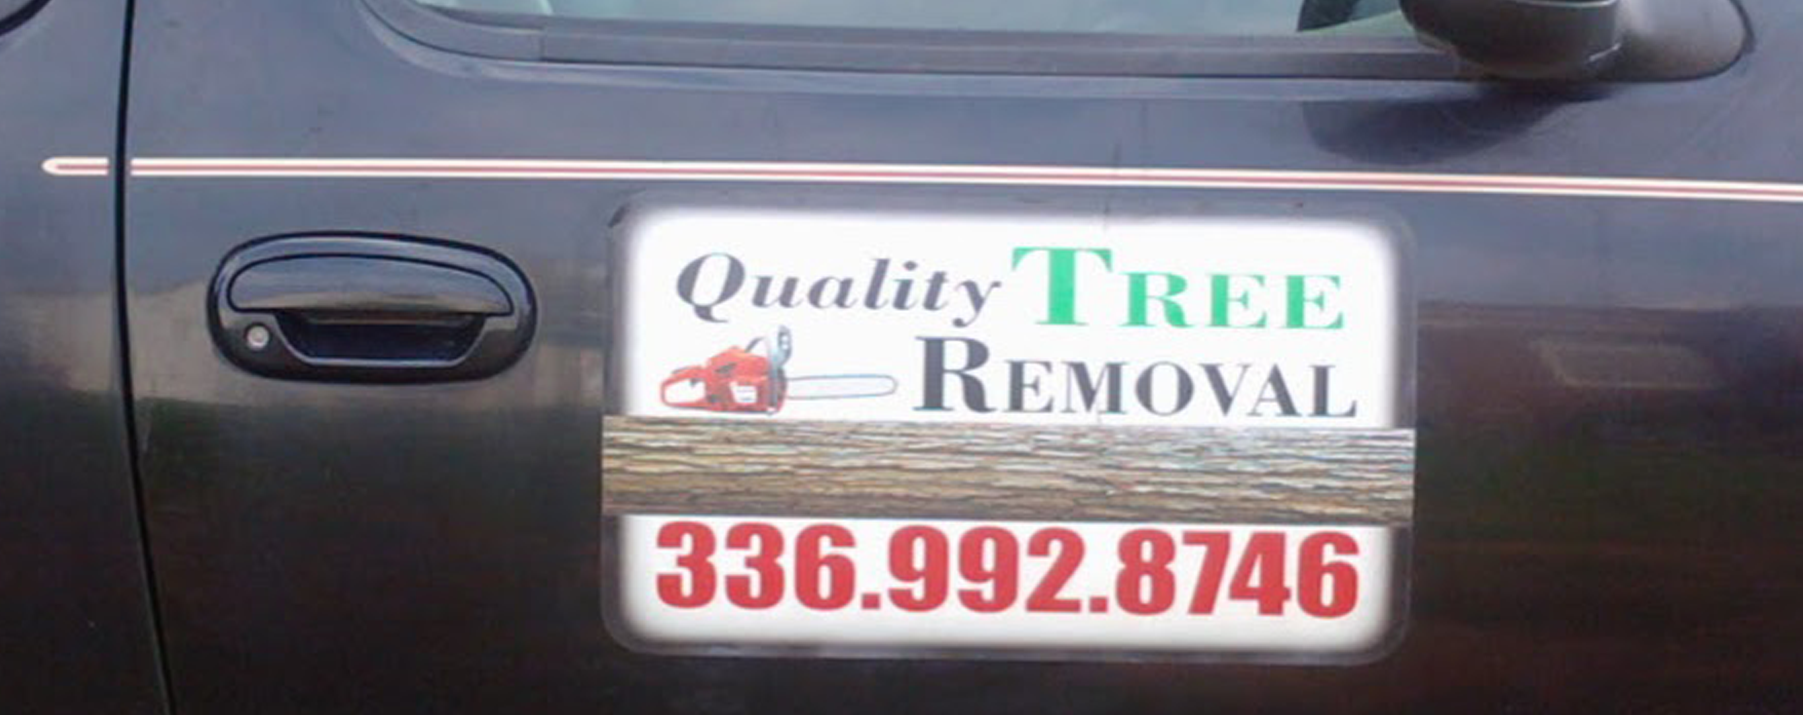 quality-tree-removal